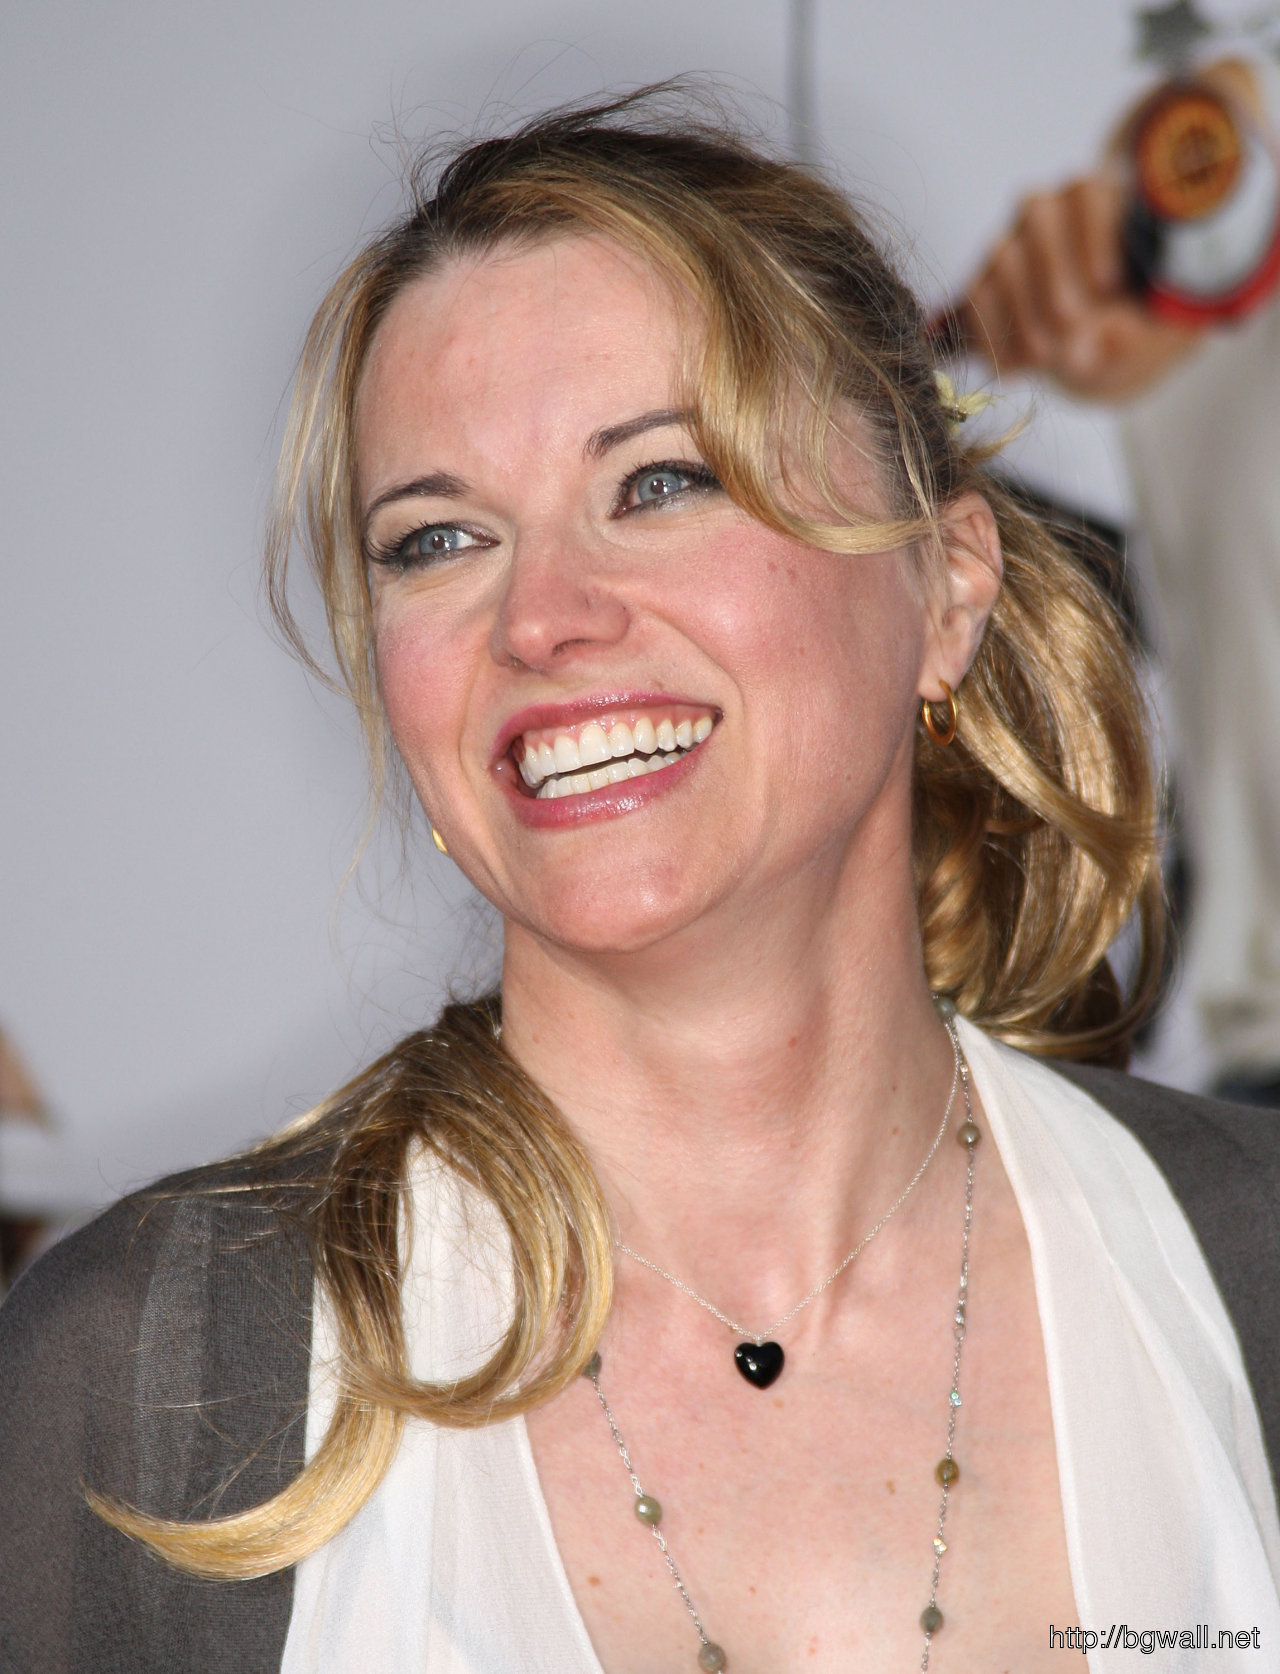 Lucy Lawless Laughing Lout Wallpaper